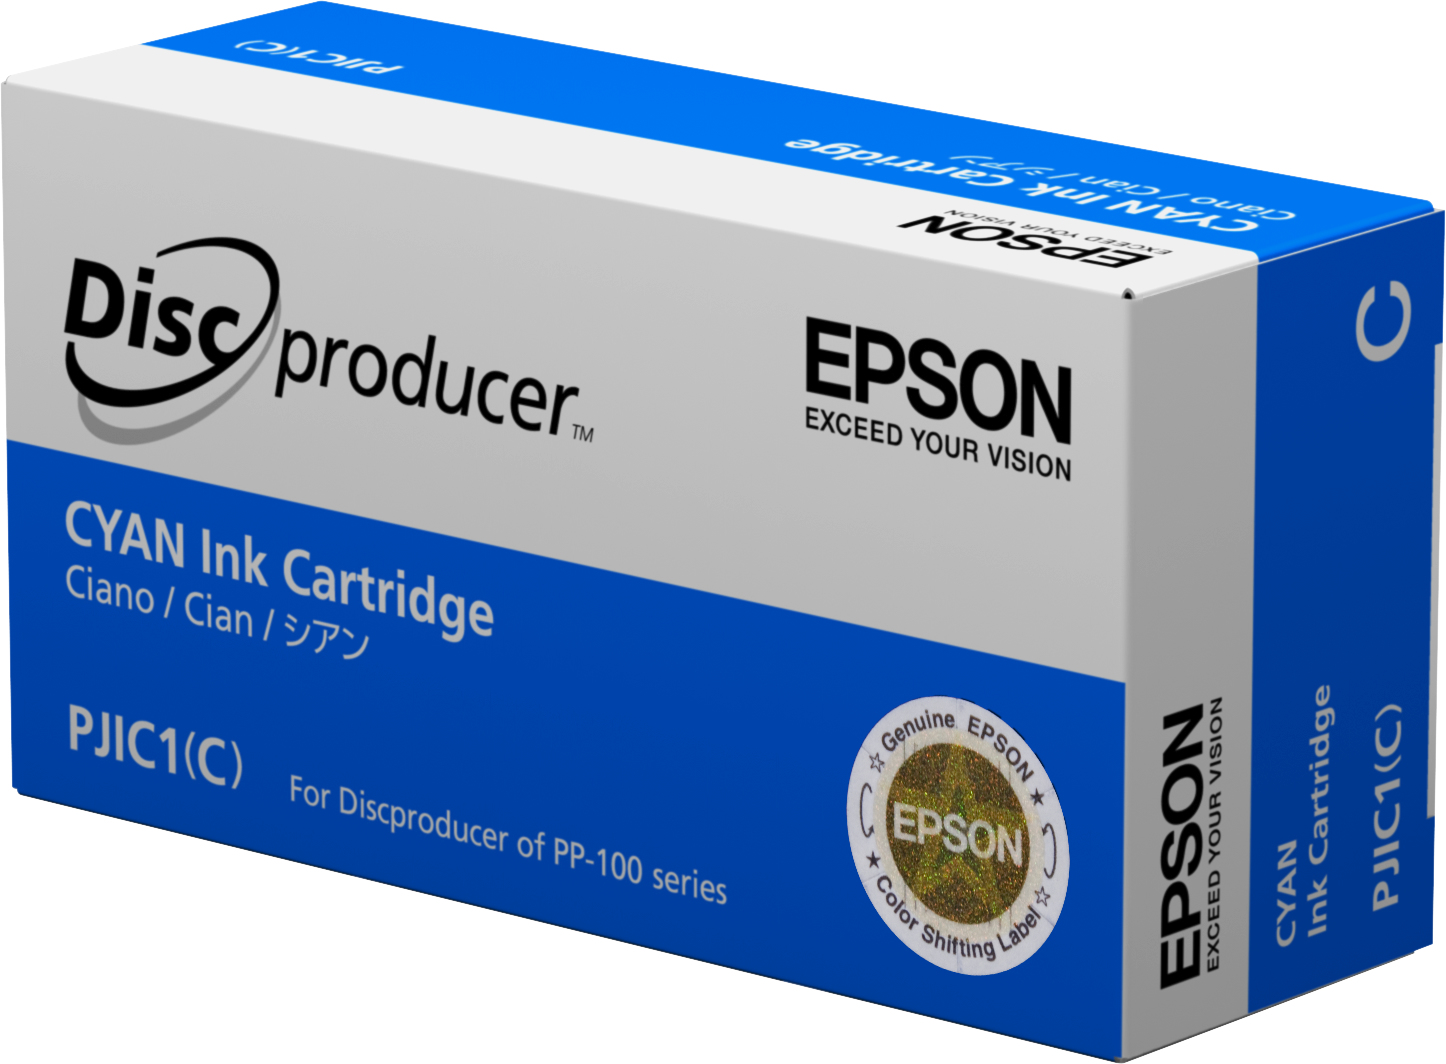 Epson - Cyan - Original - Ink Cartridge - For Discproducer PP-100, PP-100AP, PP-100II, PP-100N, PP-100NS, PP-50 C13S020447 - C2000